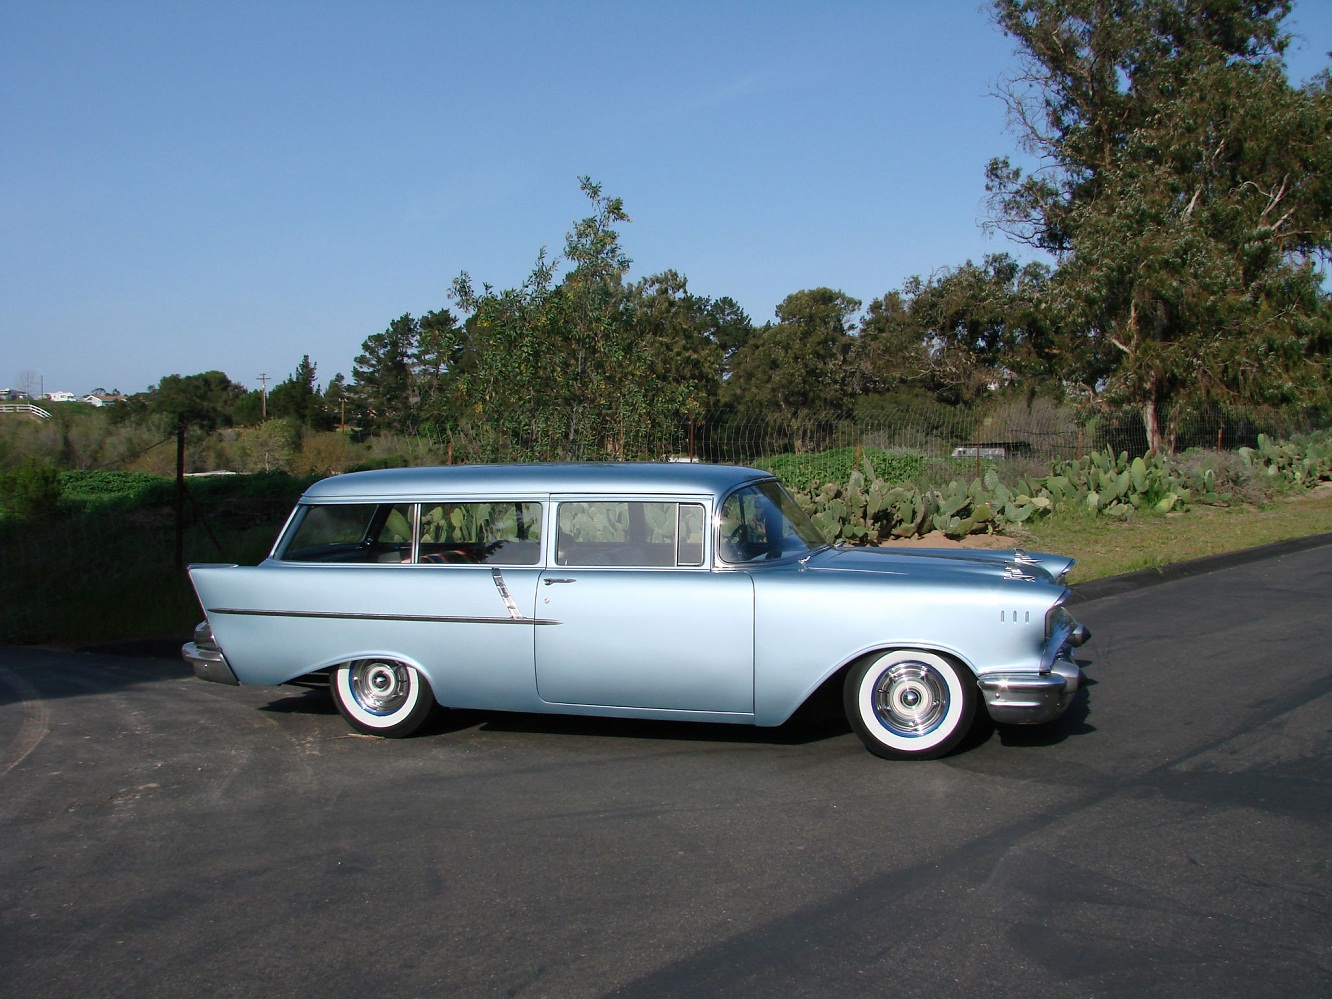 57 Chevy Wagon For Sale